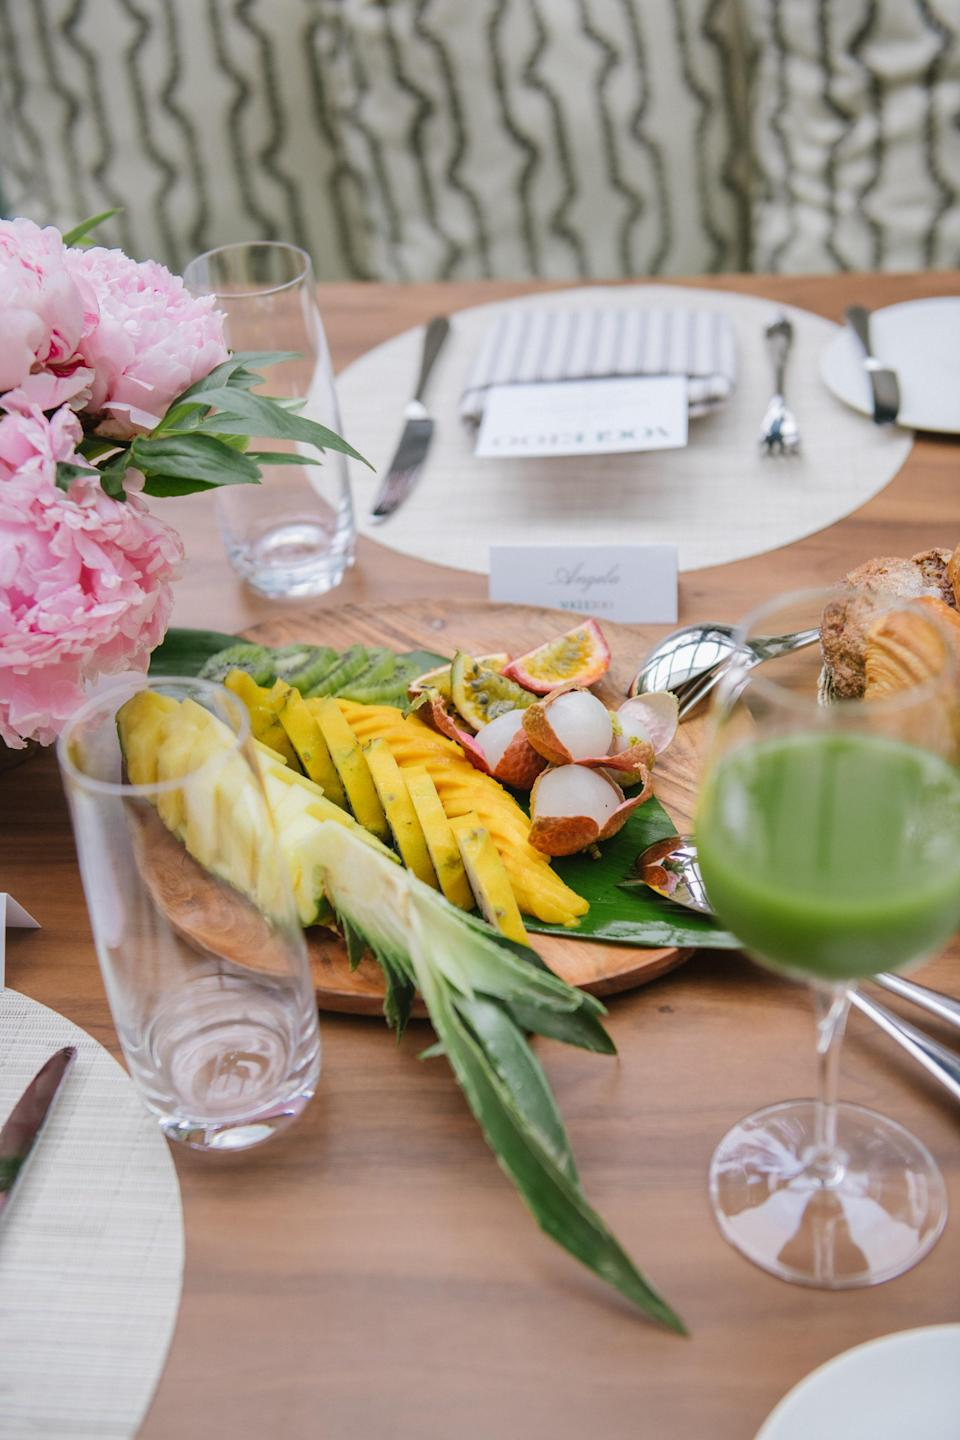 The exotic fruit platter, buttery pastries, and freshly squeezed green juice.